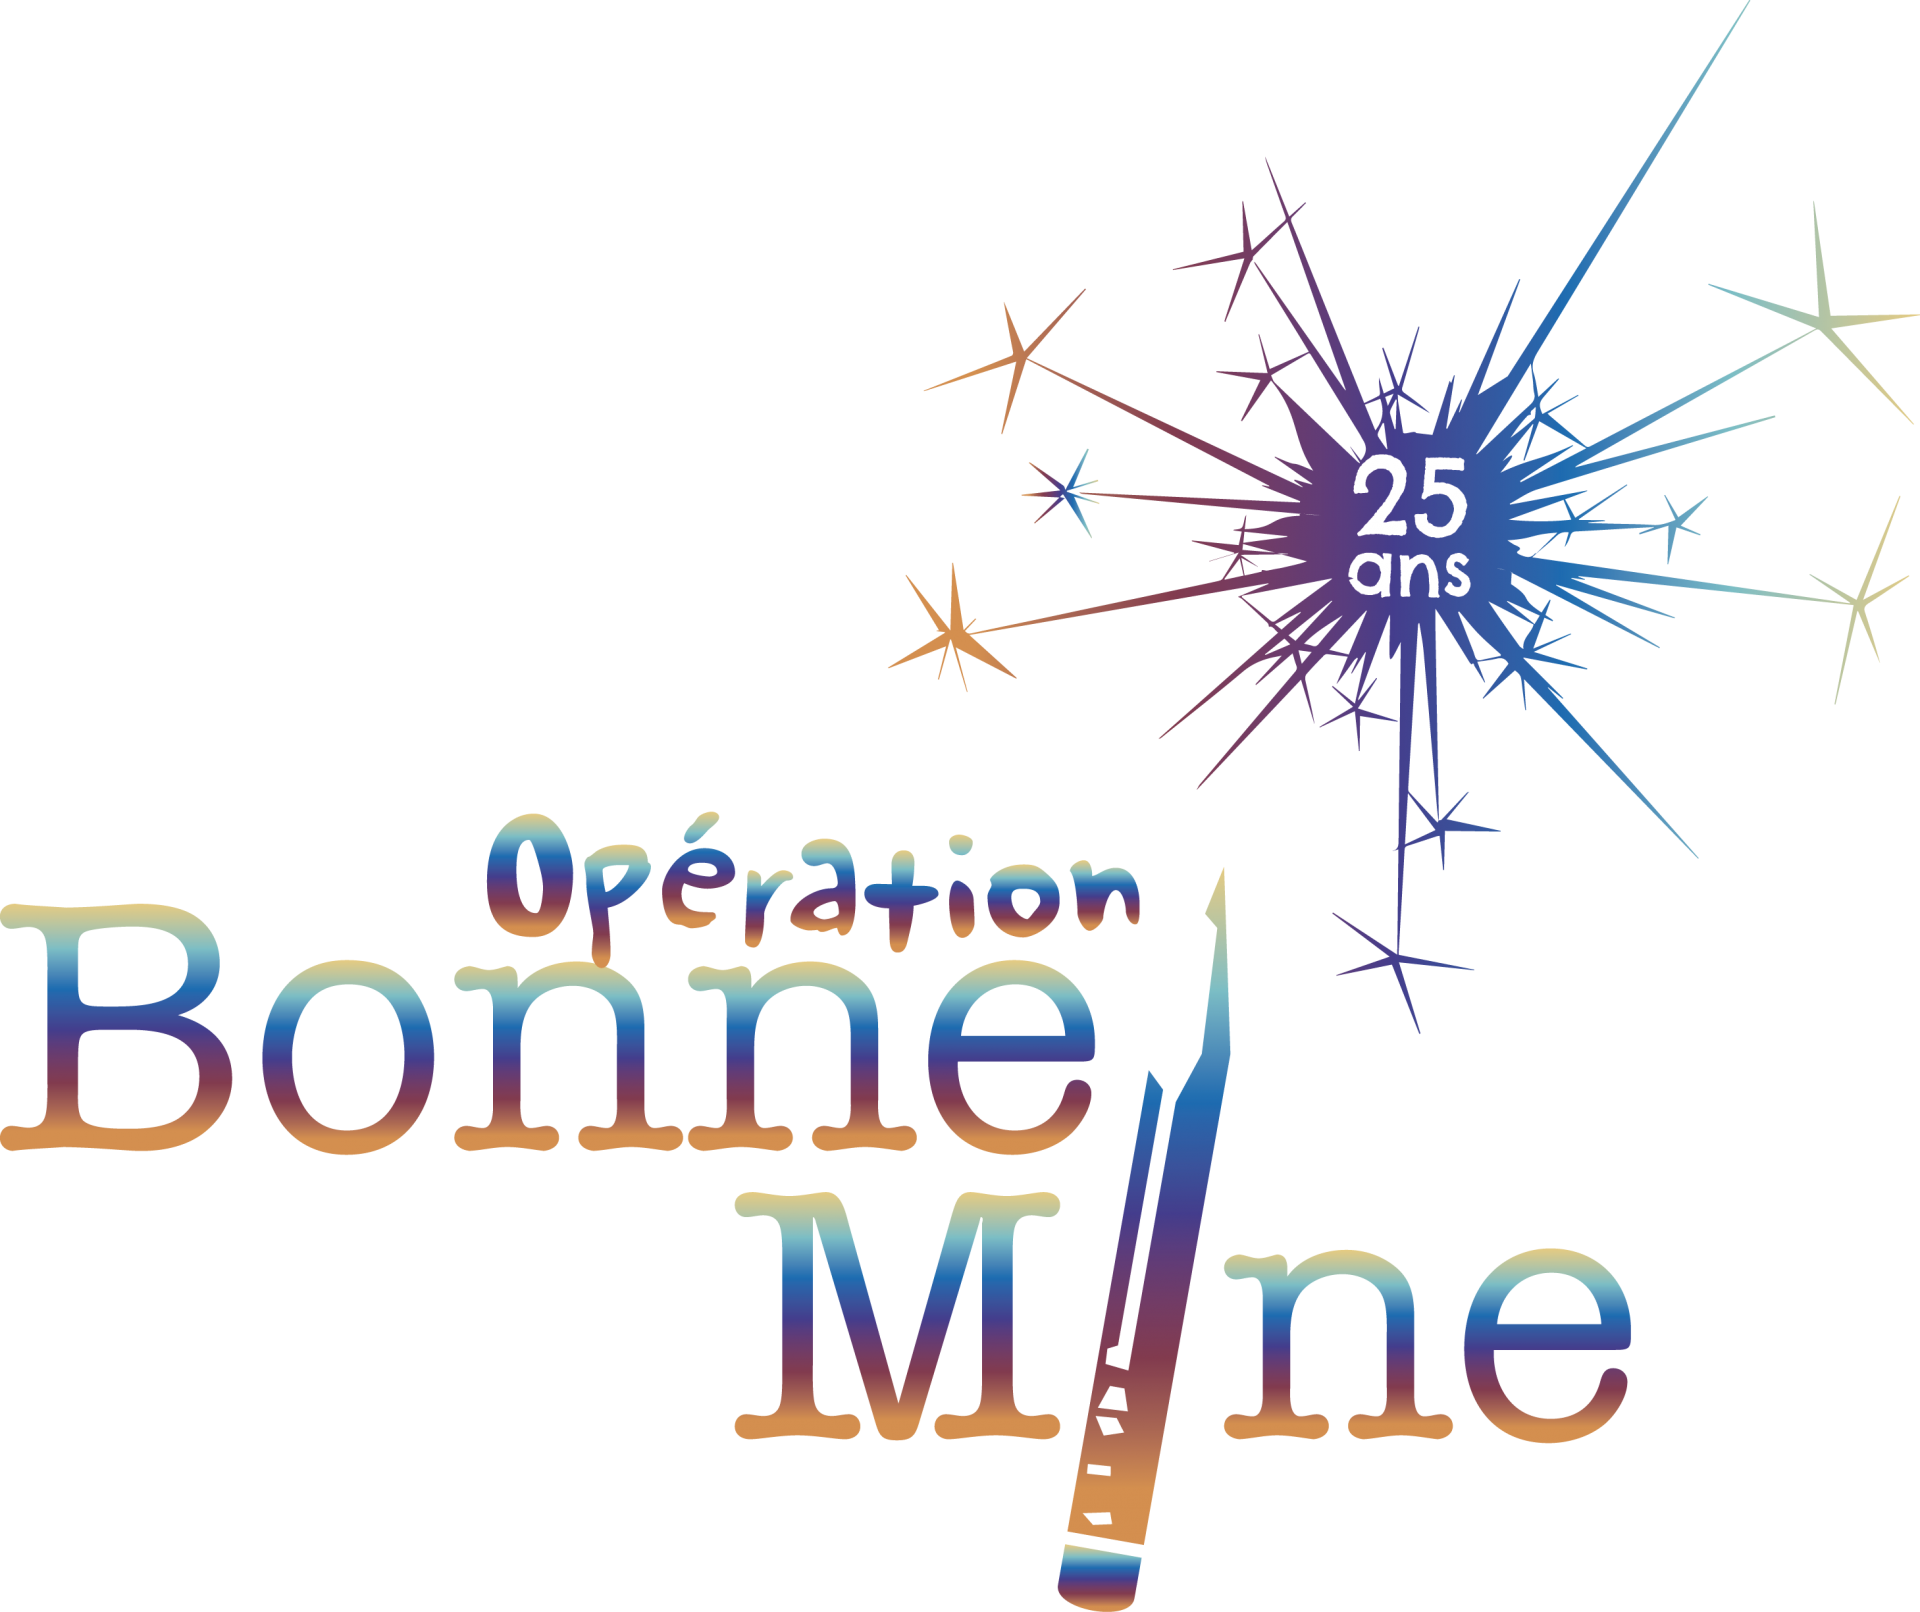 The Société de Saint-Vincent de Paul de Montréal is proud to underline its 25 years of involvement with youth thanks to its Opération Bonne Mine program